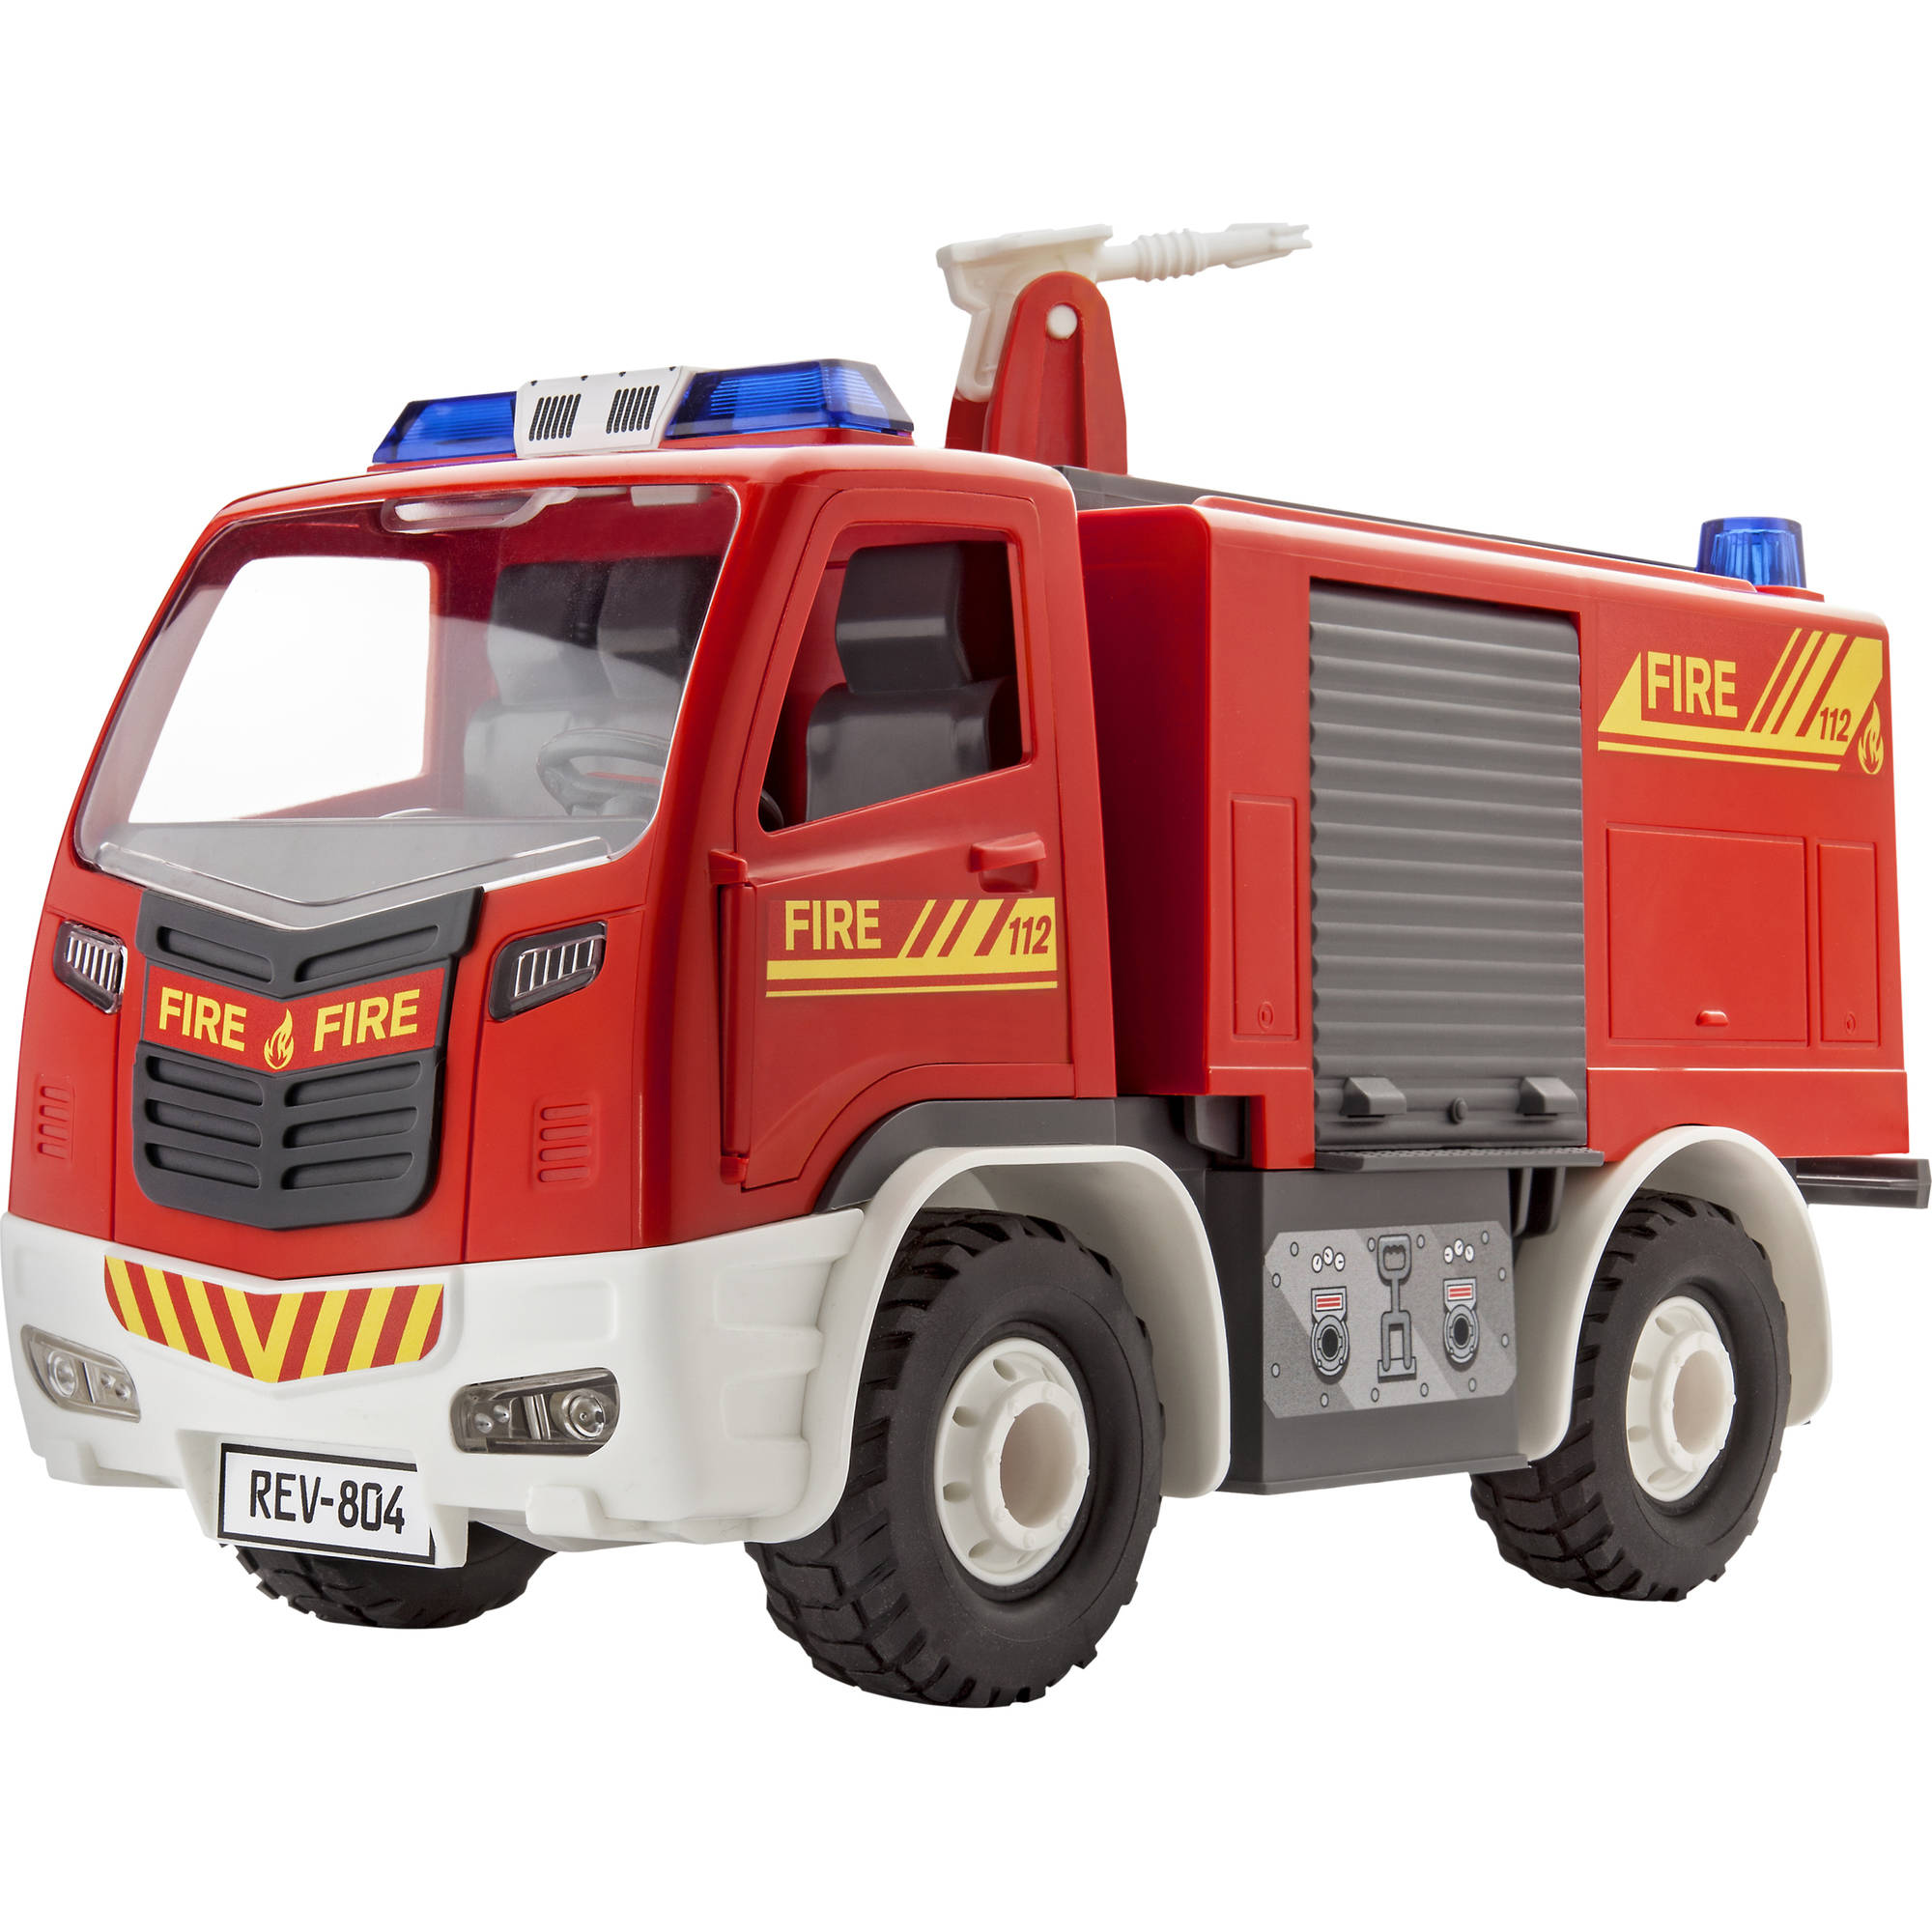 Revell Junior Kit Fire Truck Plastic Model Kit by Revell